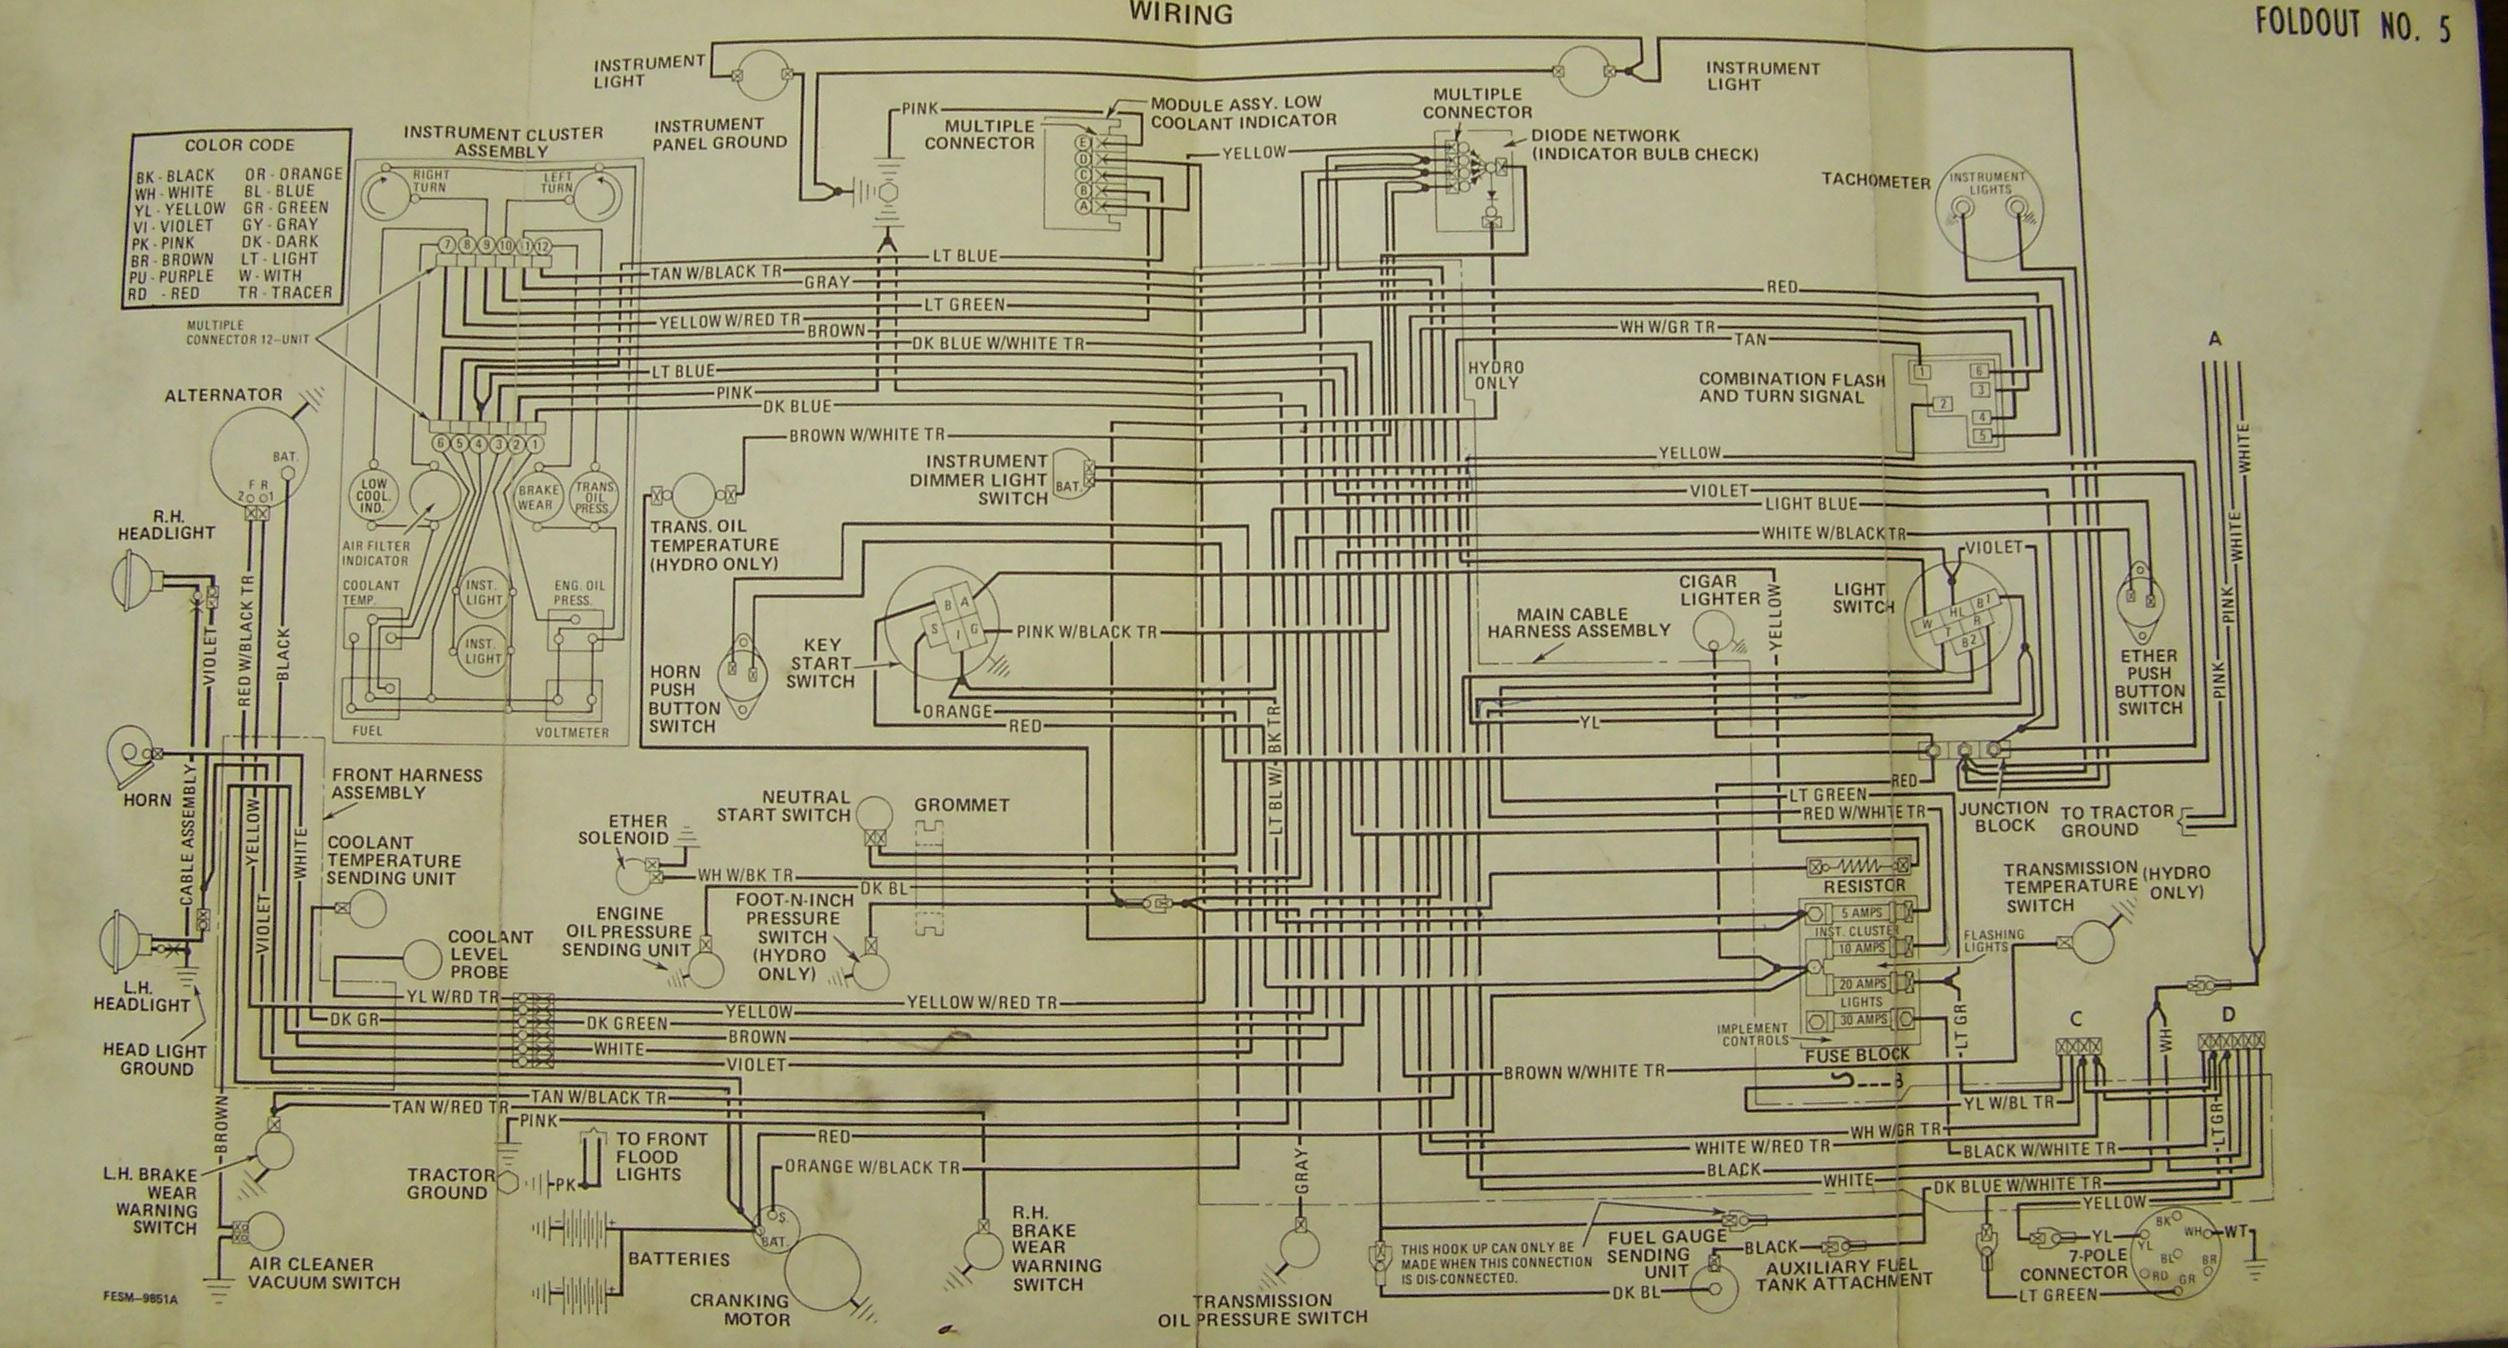 Ih 585 Wiring Diagram Library International Scout 800 Diagrams 1486 Electrical General